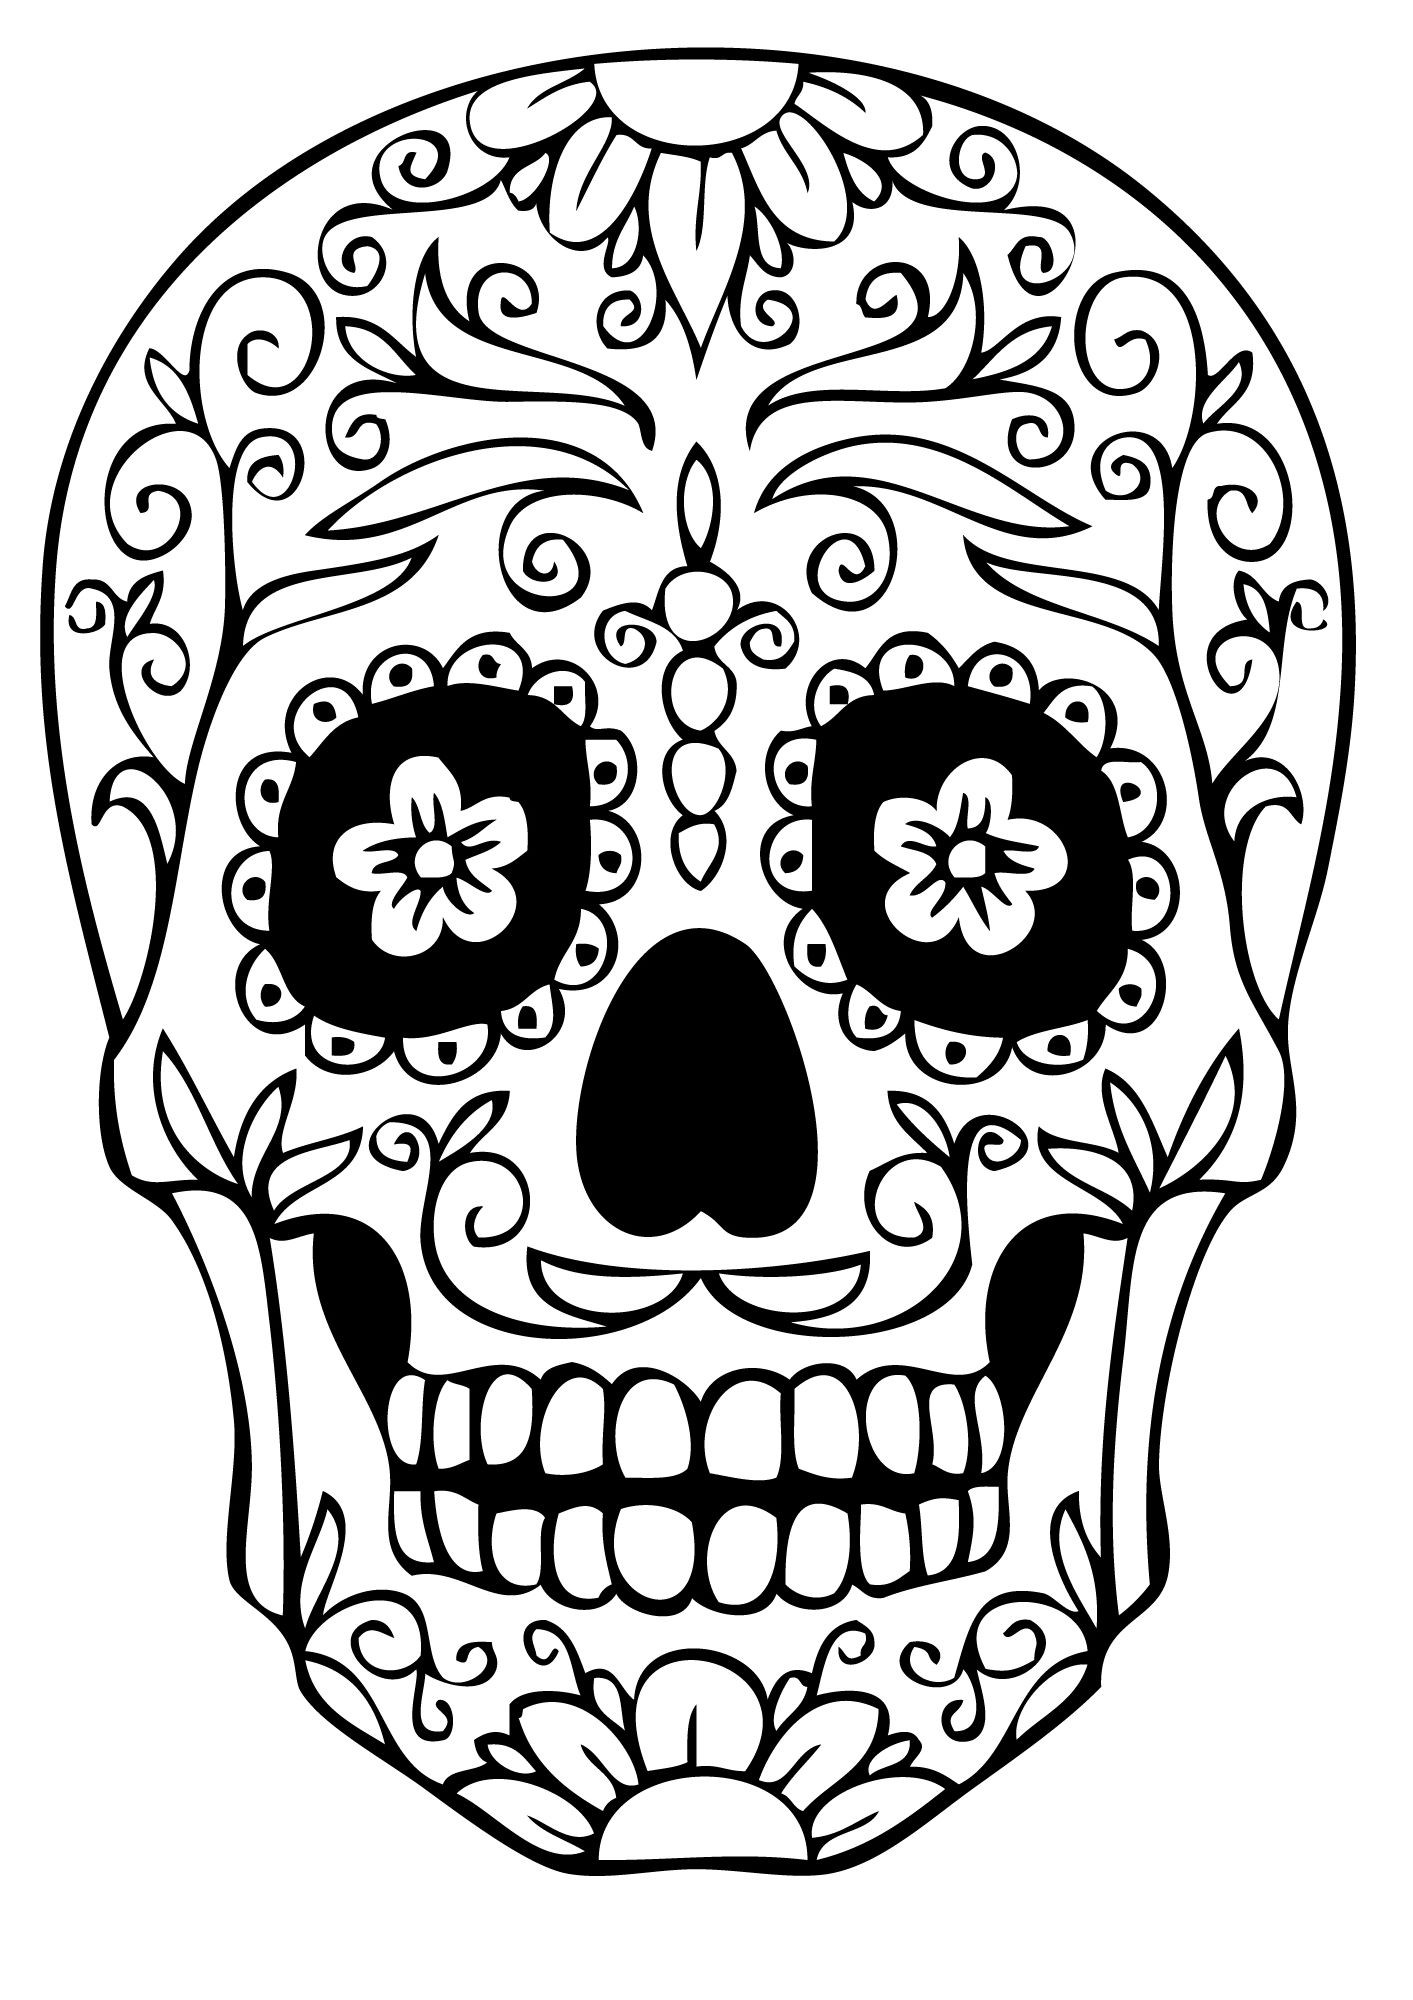 Printable Sugar Skulls Coloring Pages  Sugar Skull Coloring Pages Best Coloring Pages For Kids